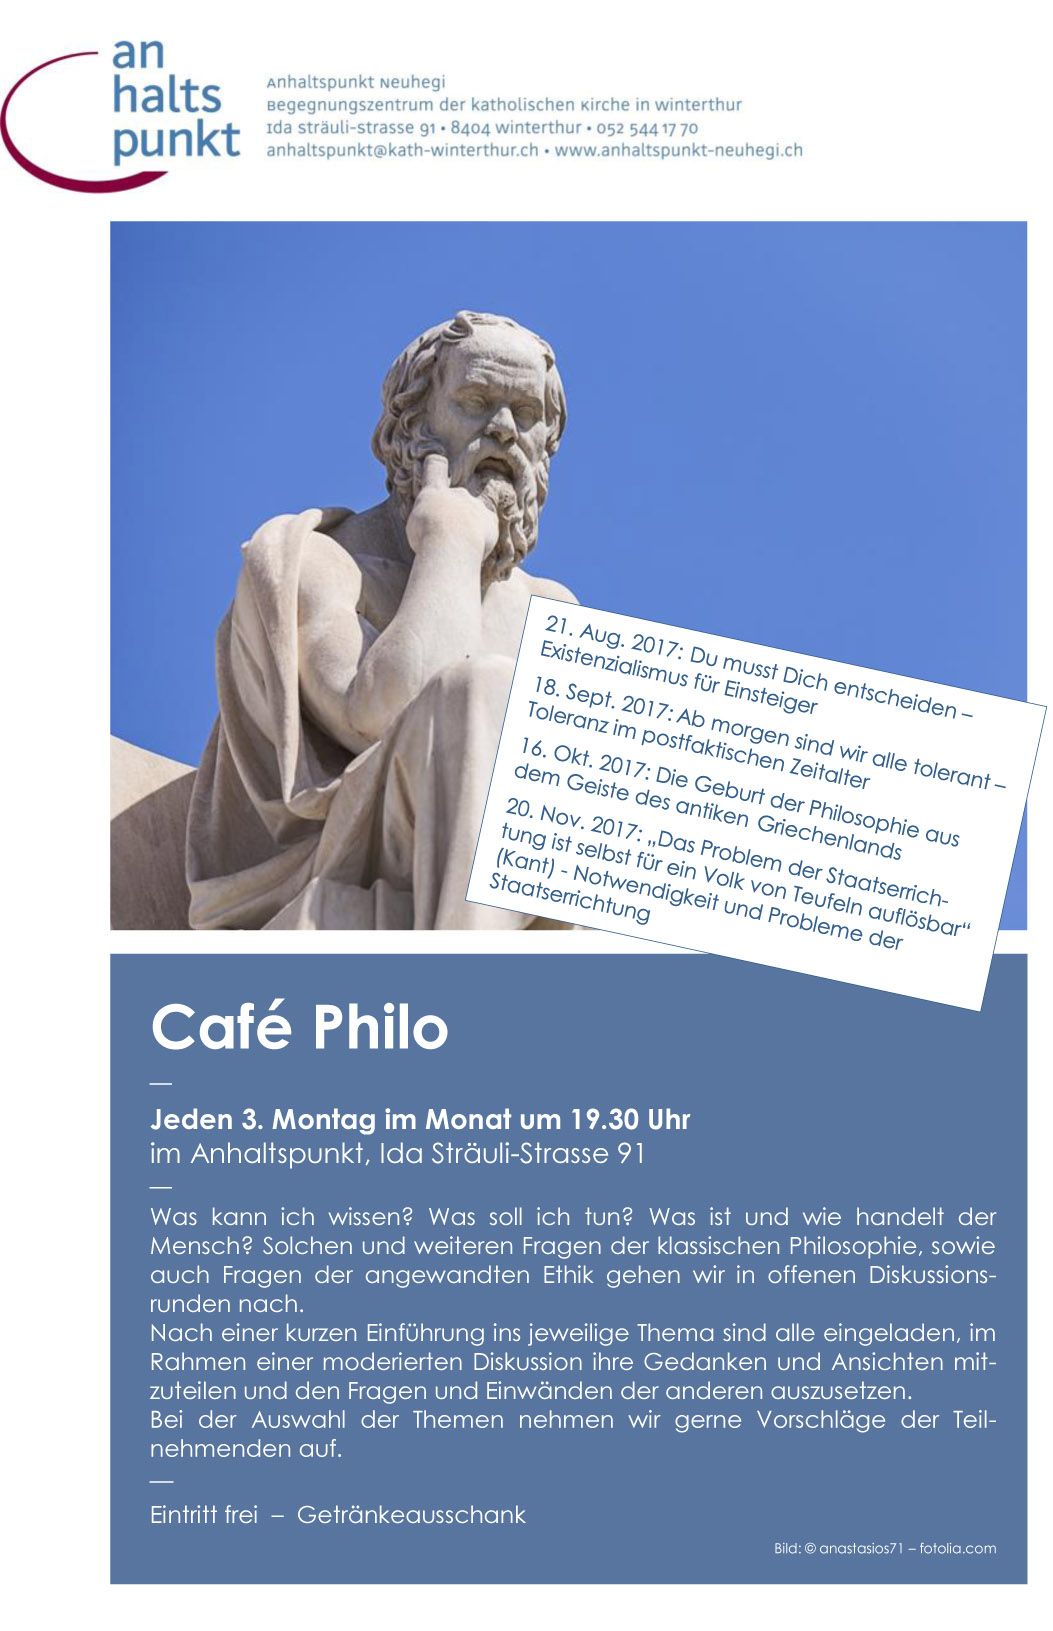 ahp Cafe Philo 17 2